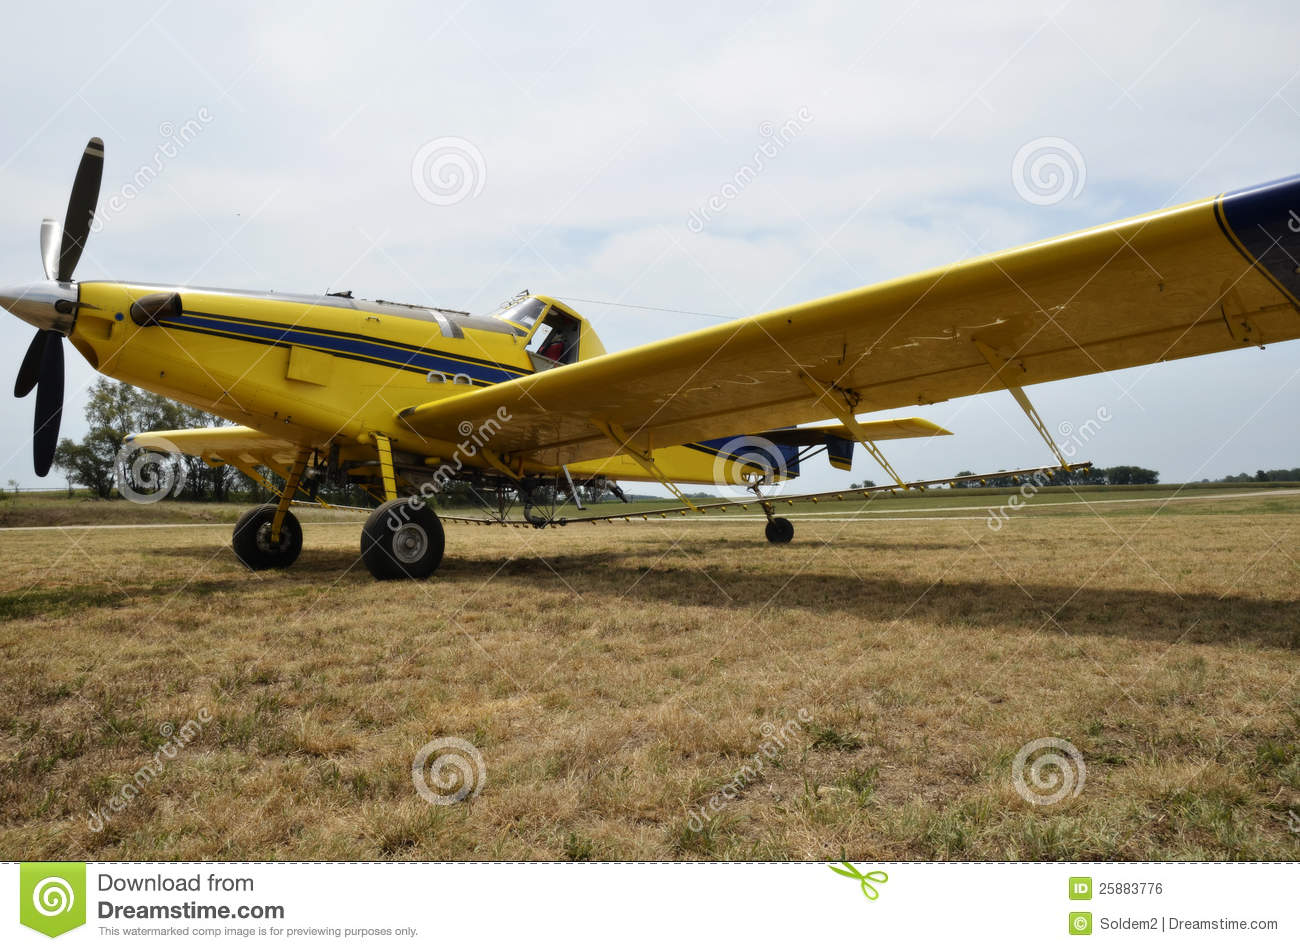 Airplane Crop Duster Royalty Free Stock Image - Image: 25883776